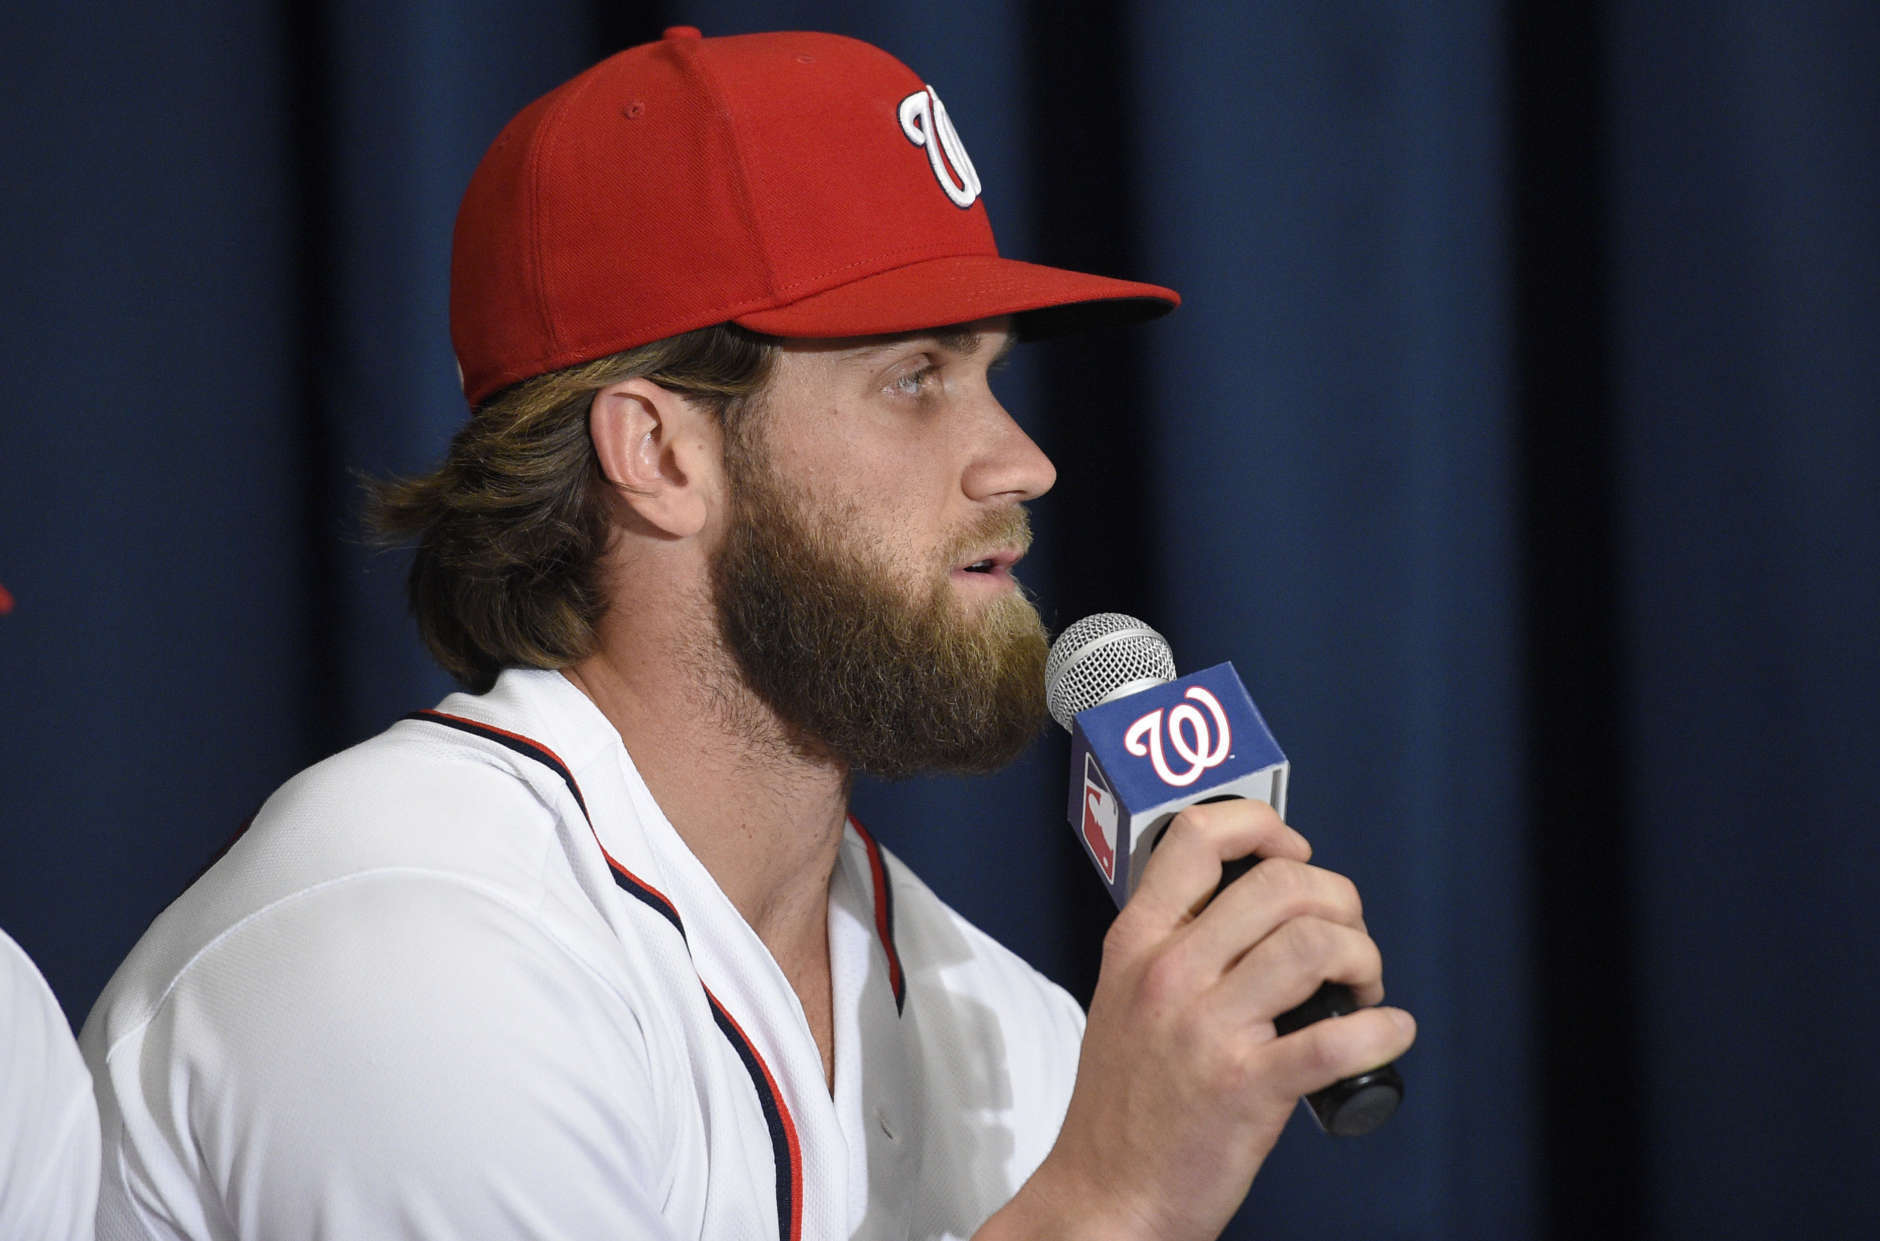 Washington Nationals' Bryce Harper speaks at a baseball press conference to unveil the 2018 MLB All-Star Game logo, Wednesday, July 26, 2017, in Washington. (AP Photo/Nick Wass)